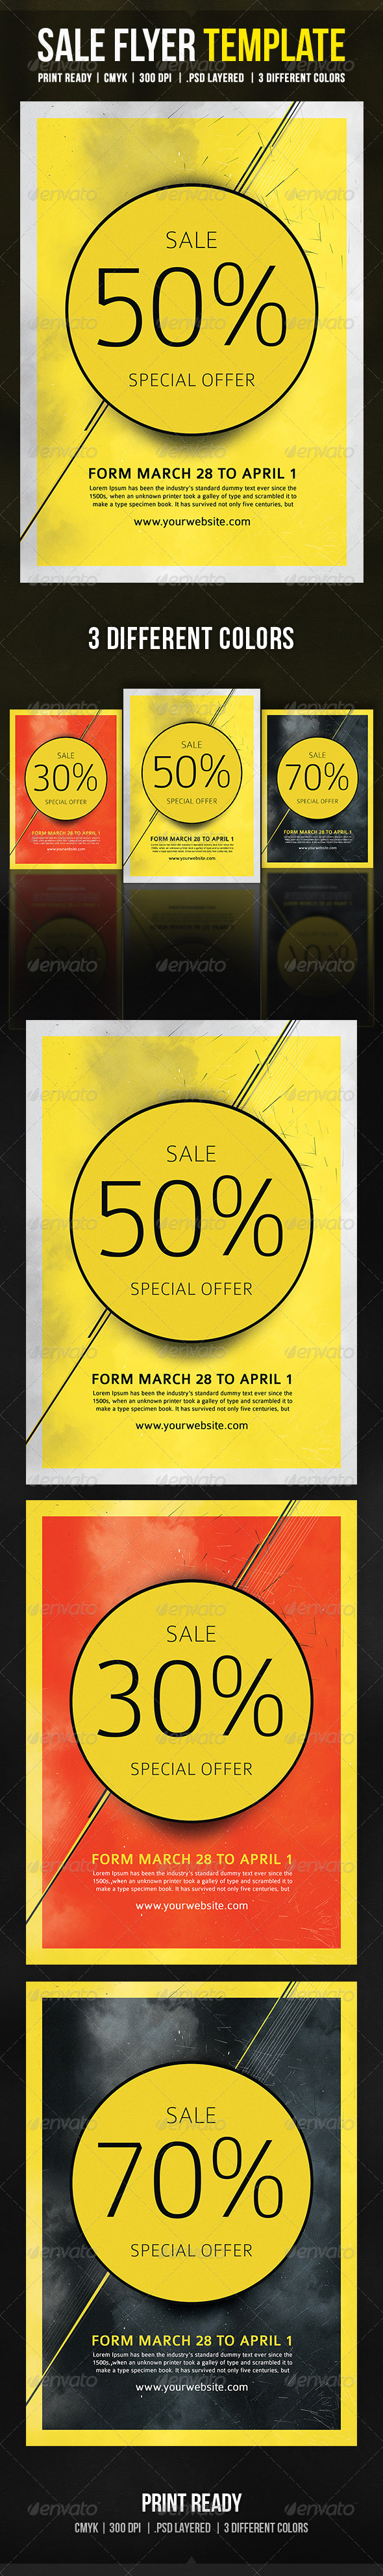 GraphicRiver Sale Flyer Template 8750631